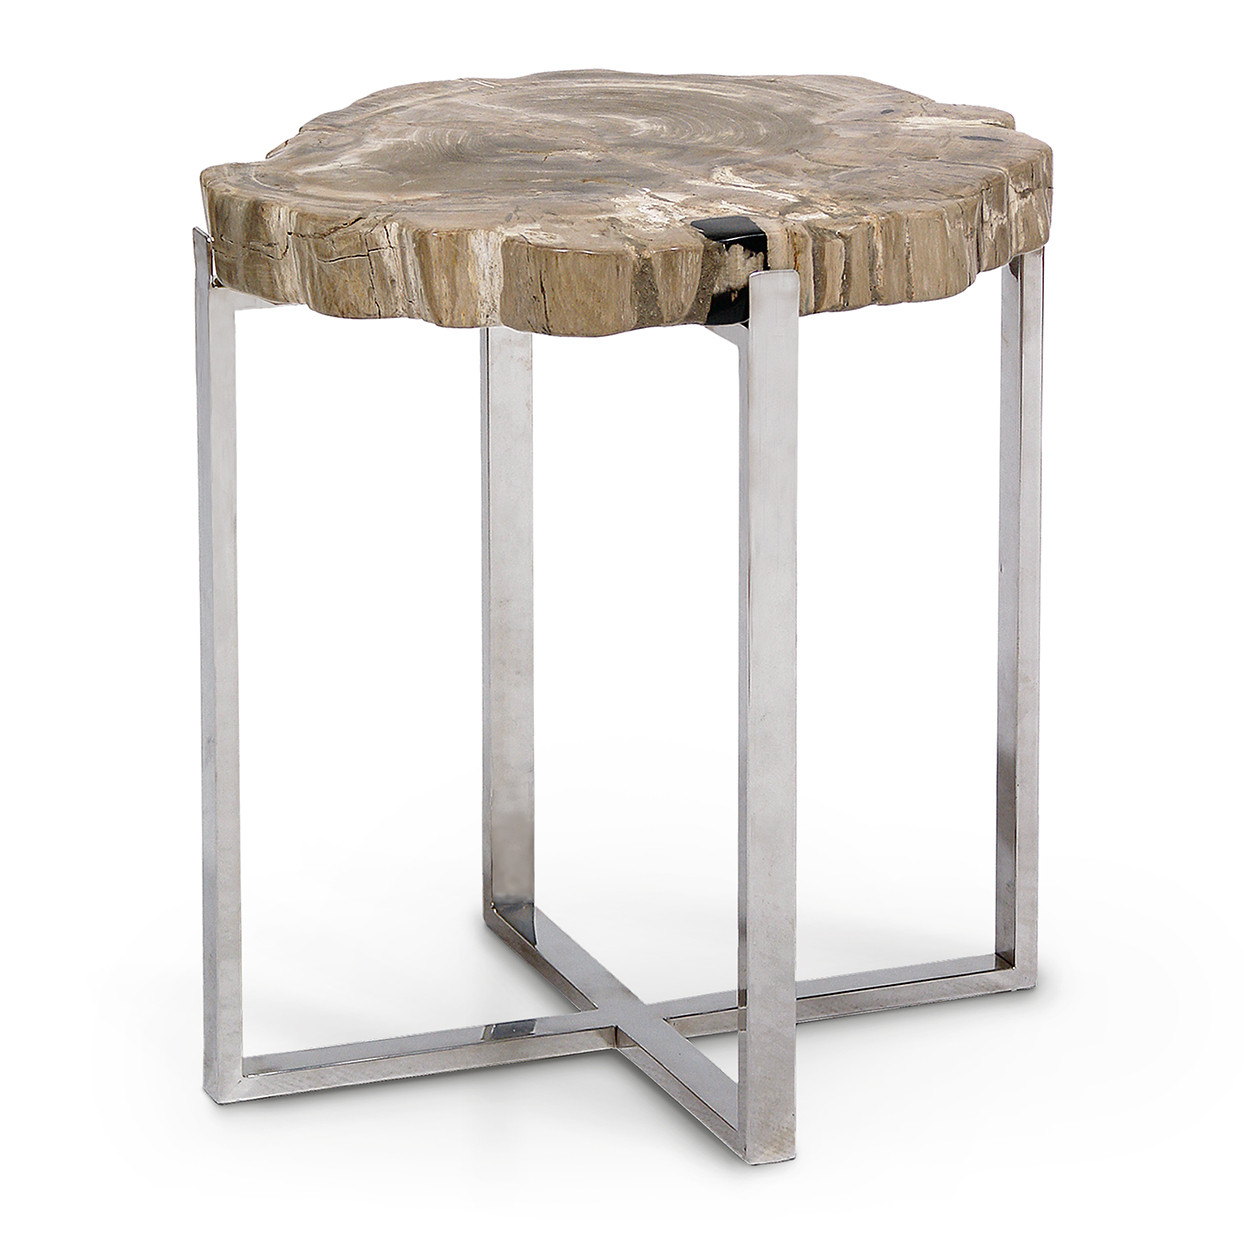 round marble top accent table probably outrageous best the lovely modern end design zuo elegant side tables temporary room dividers ethan allen shelf narrow rectangular glass